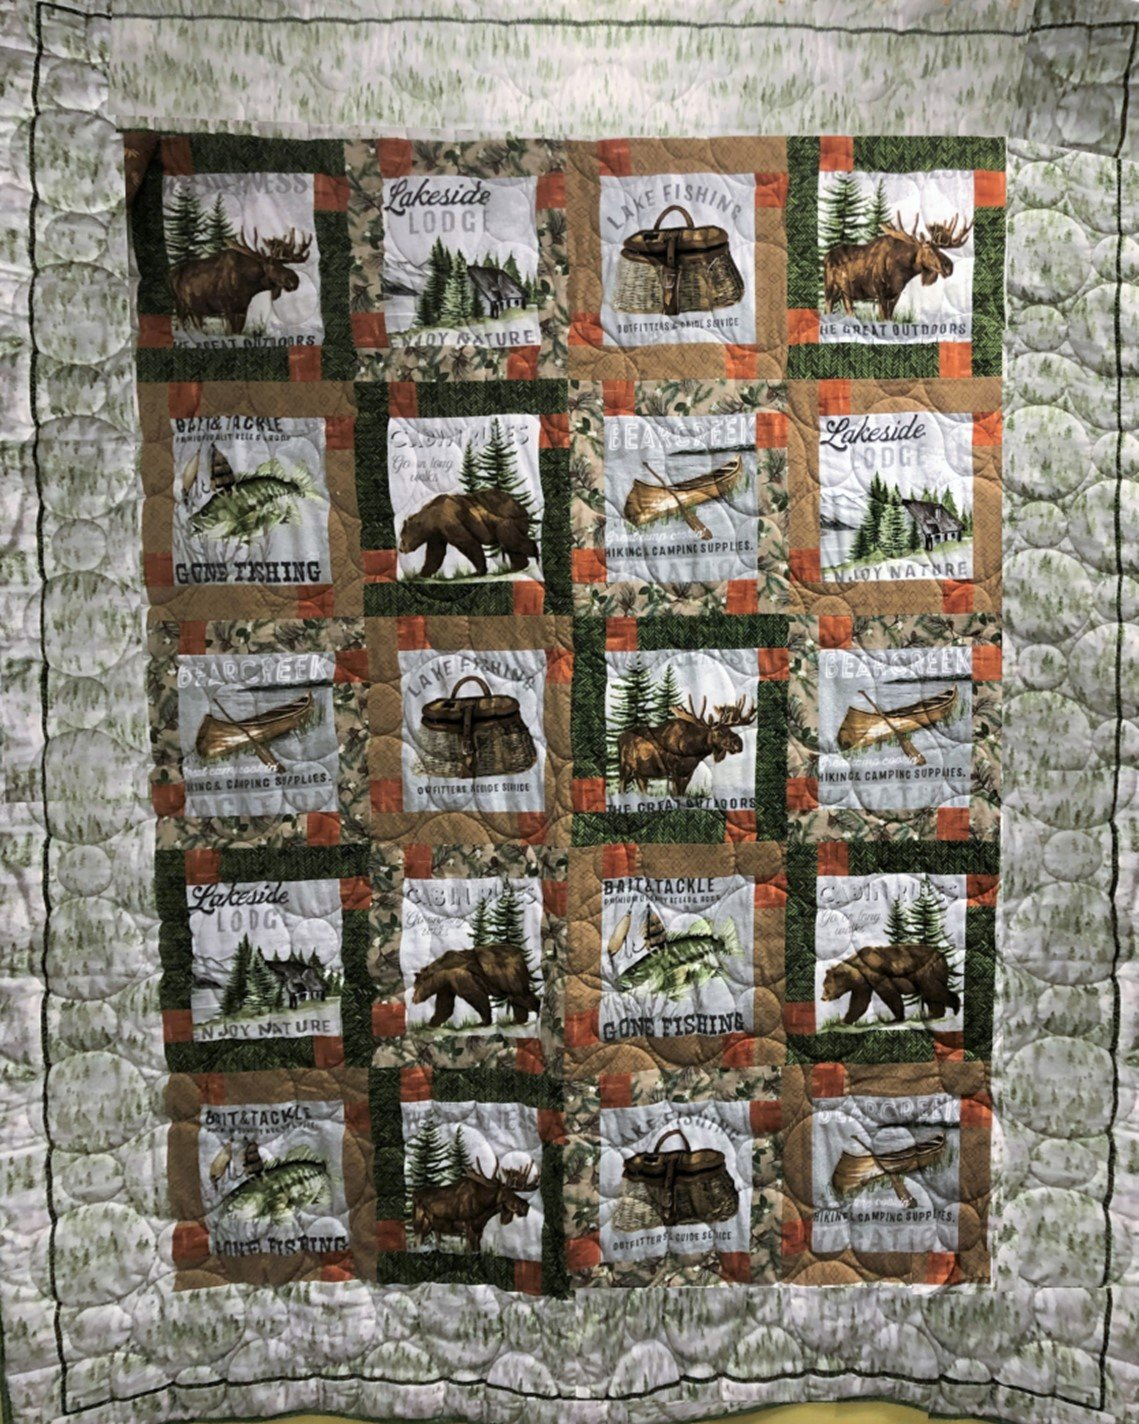 LAKESIDE LODGE FLANNEL QUILT KIT